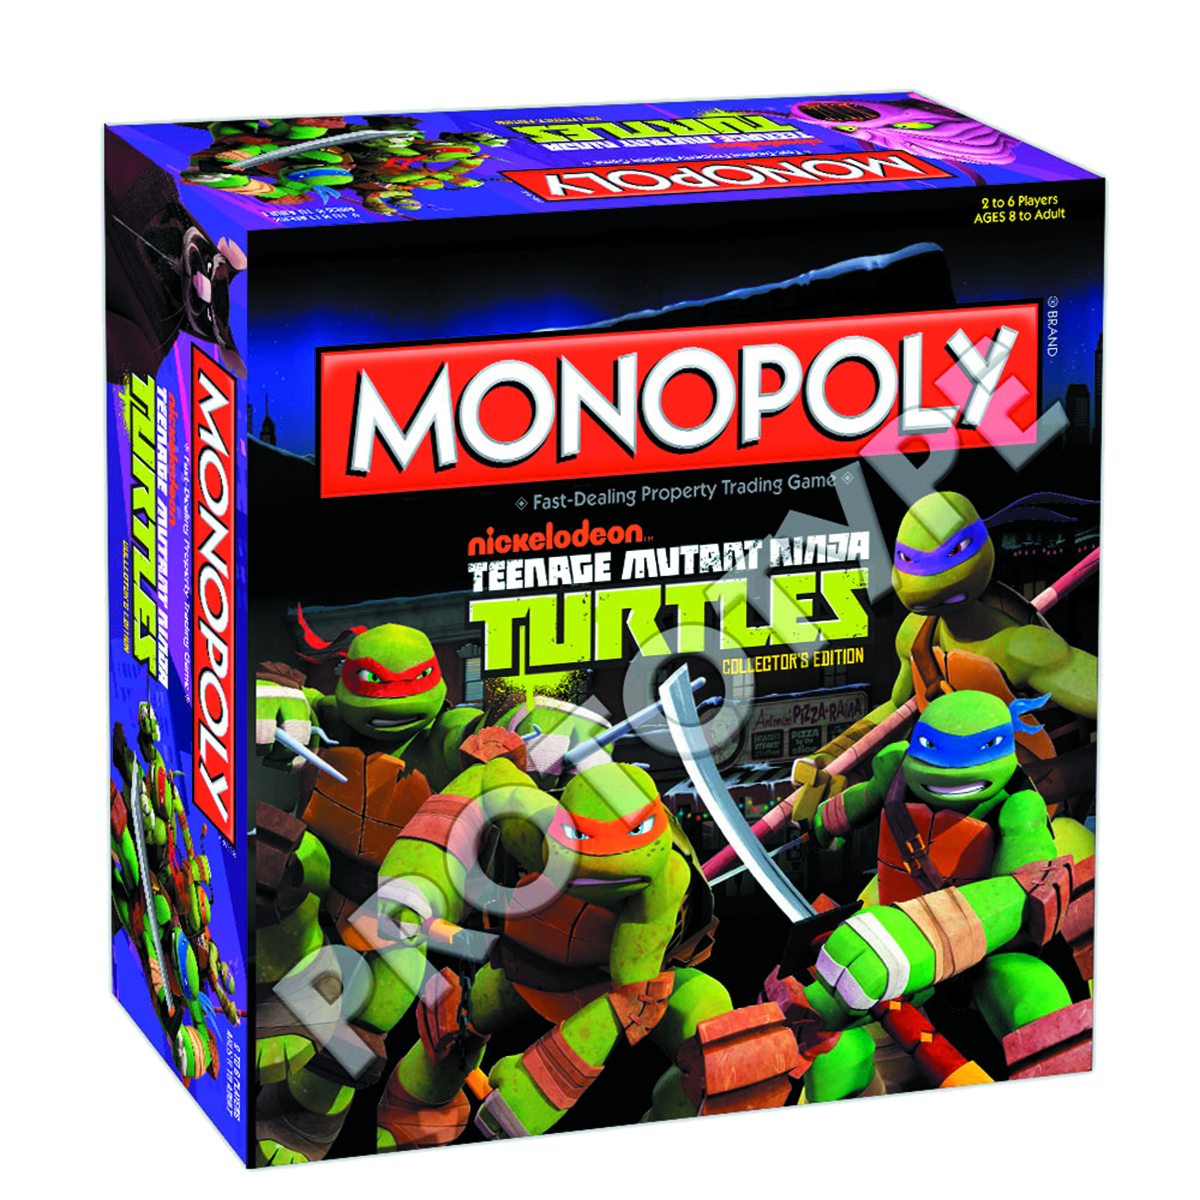 TEENAGE MUTANT NINJA TURTLES MONOPOLY